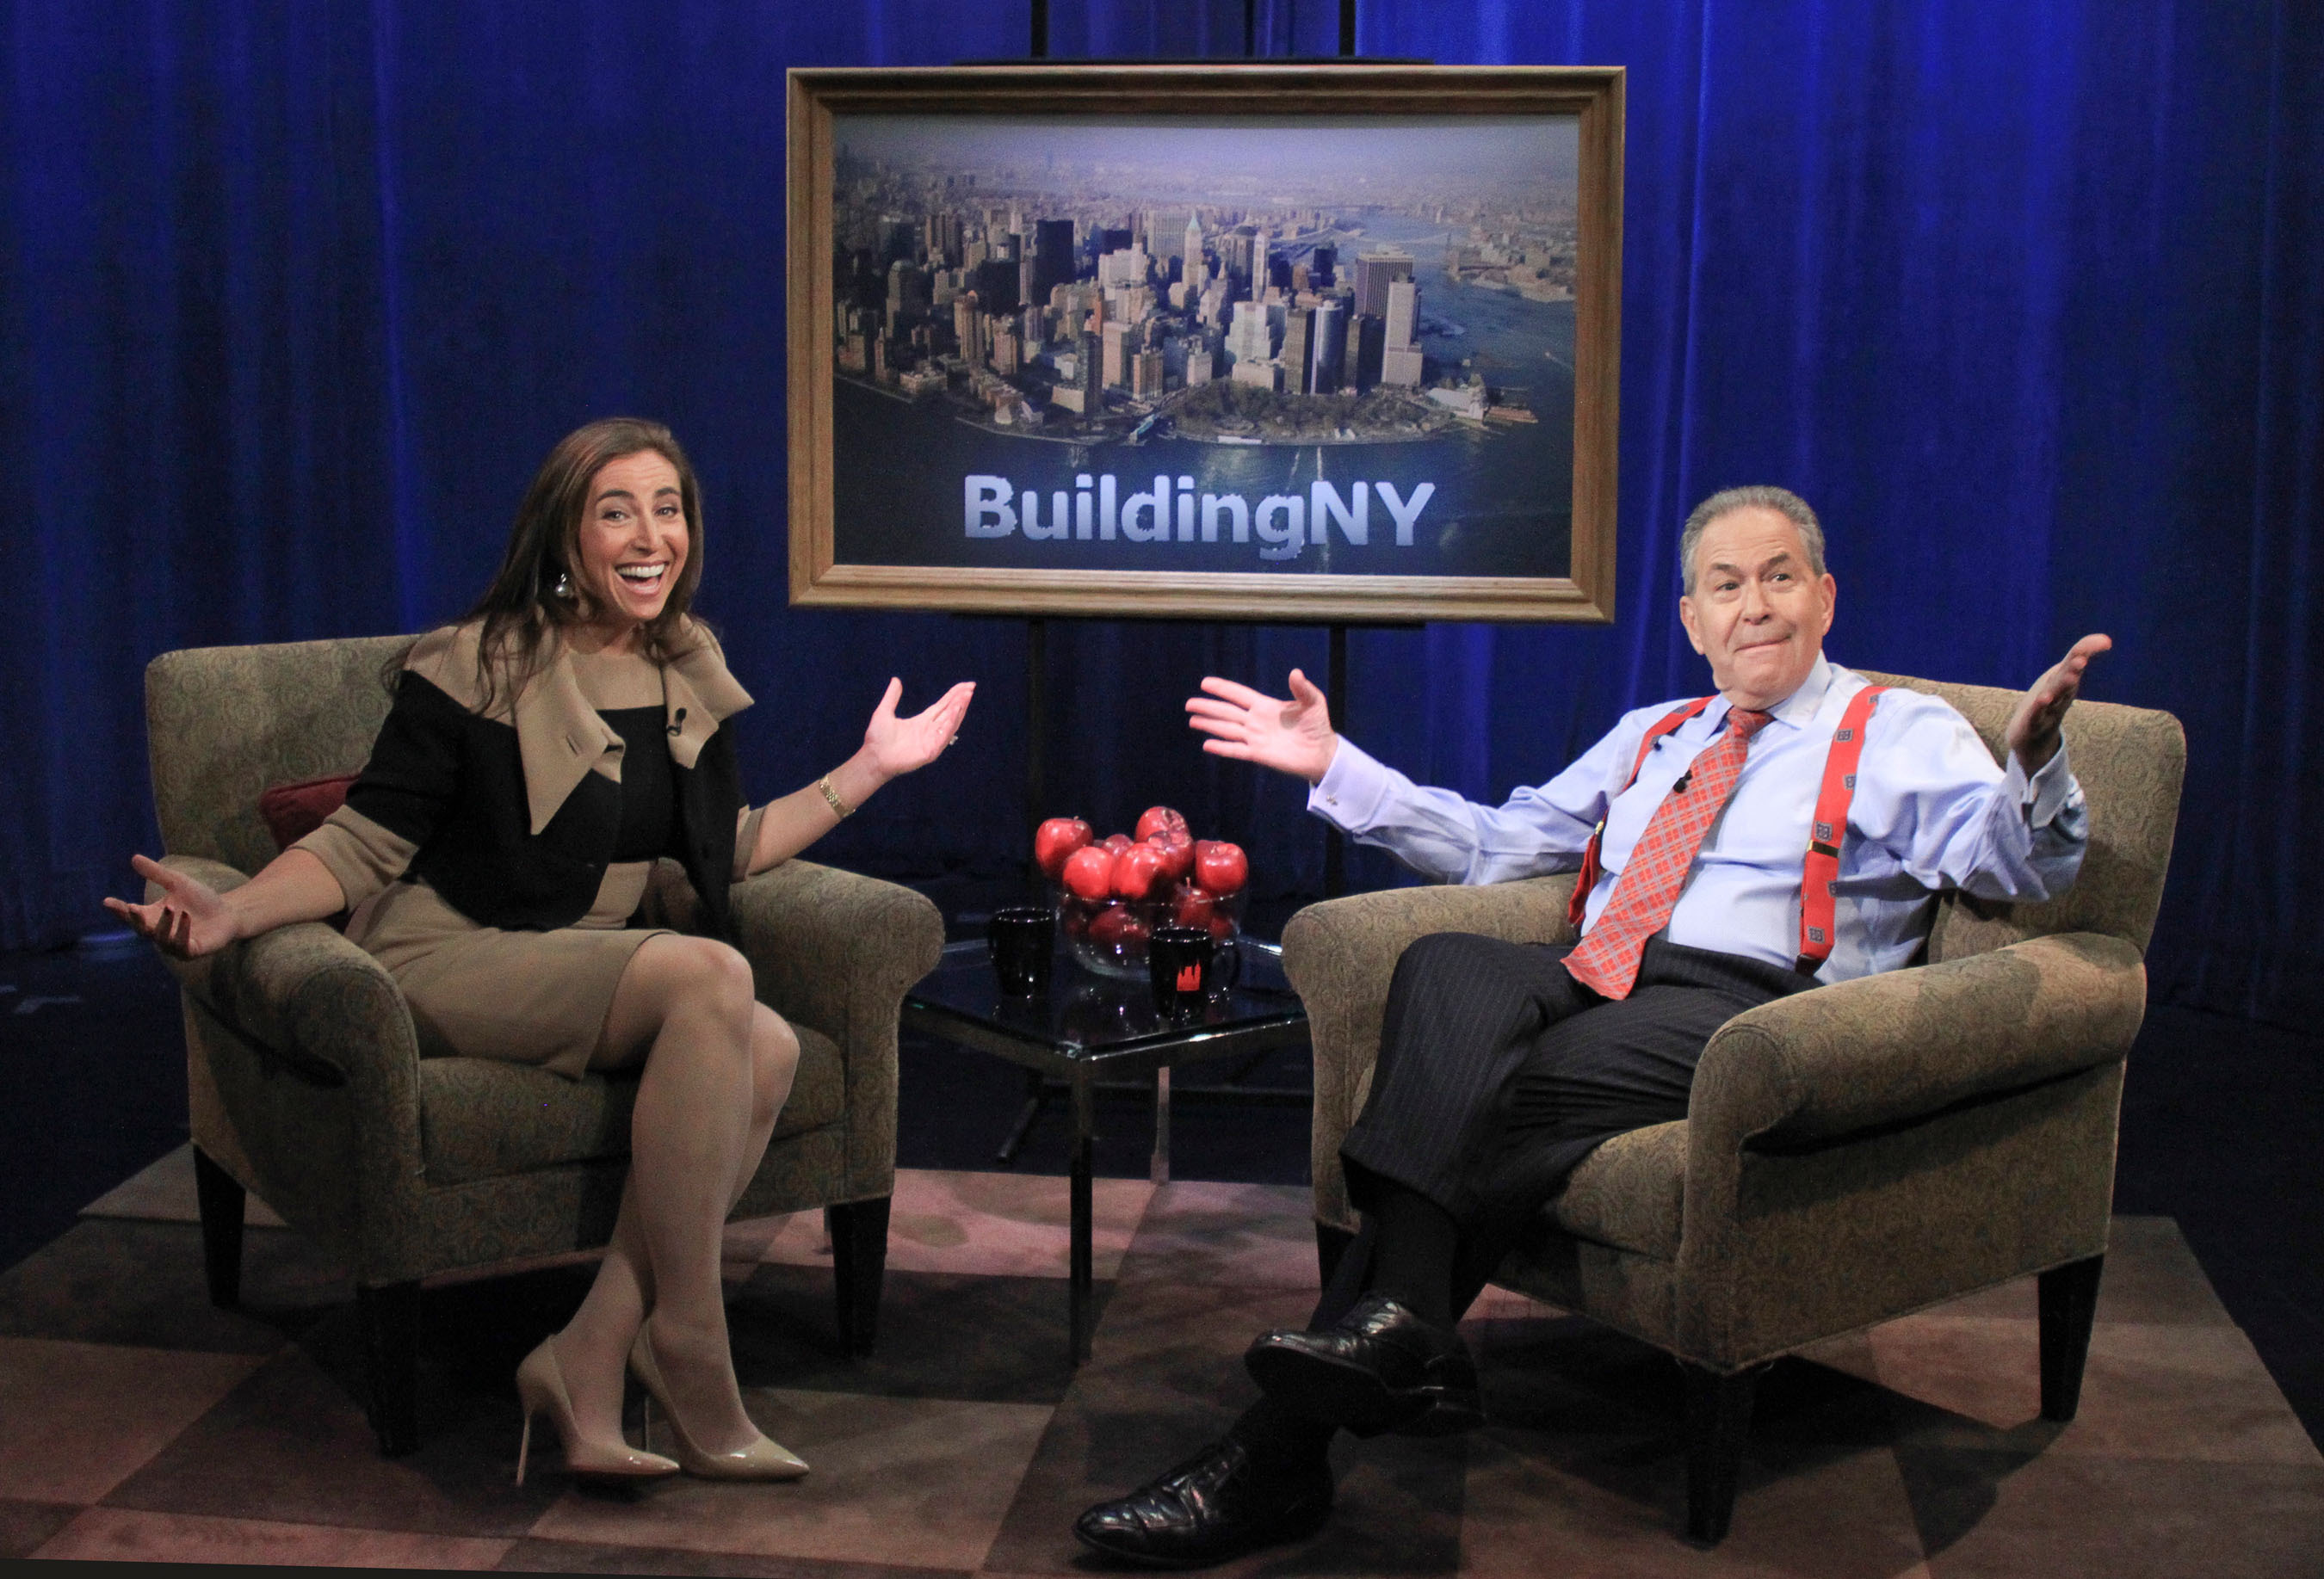 """""""Building New York-New York Life Stories,"""" with renowned commercial real estate columnist, television and radio personality Michael Stoler, premiers its second episode of its ninth season with a profile of the nation's leading real estate publicist Roxanne Donovan, founder of Great Ink.  (PRNewsFoto/Great Ink Communications, LLC)"""